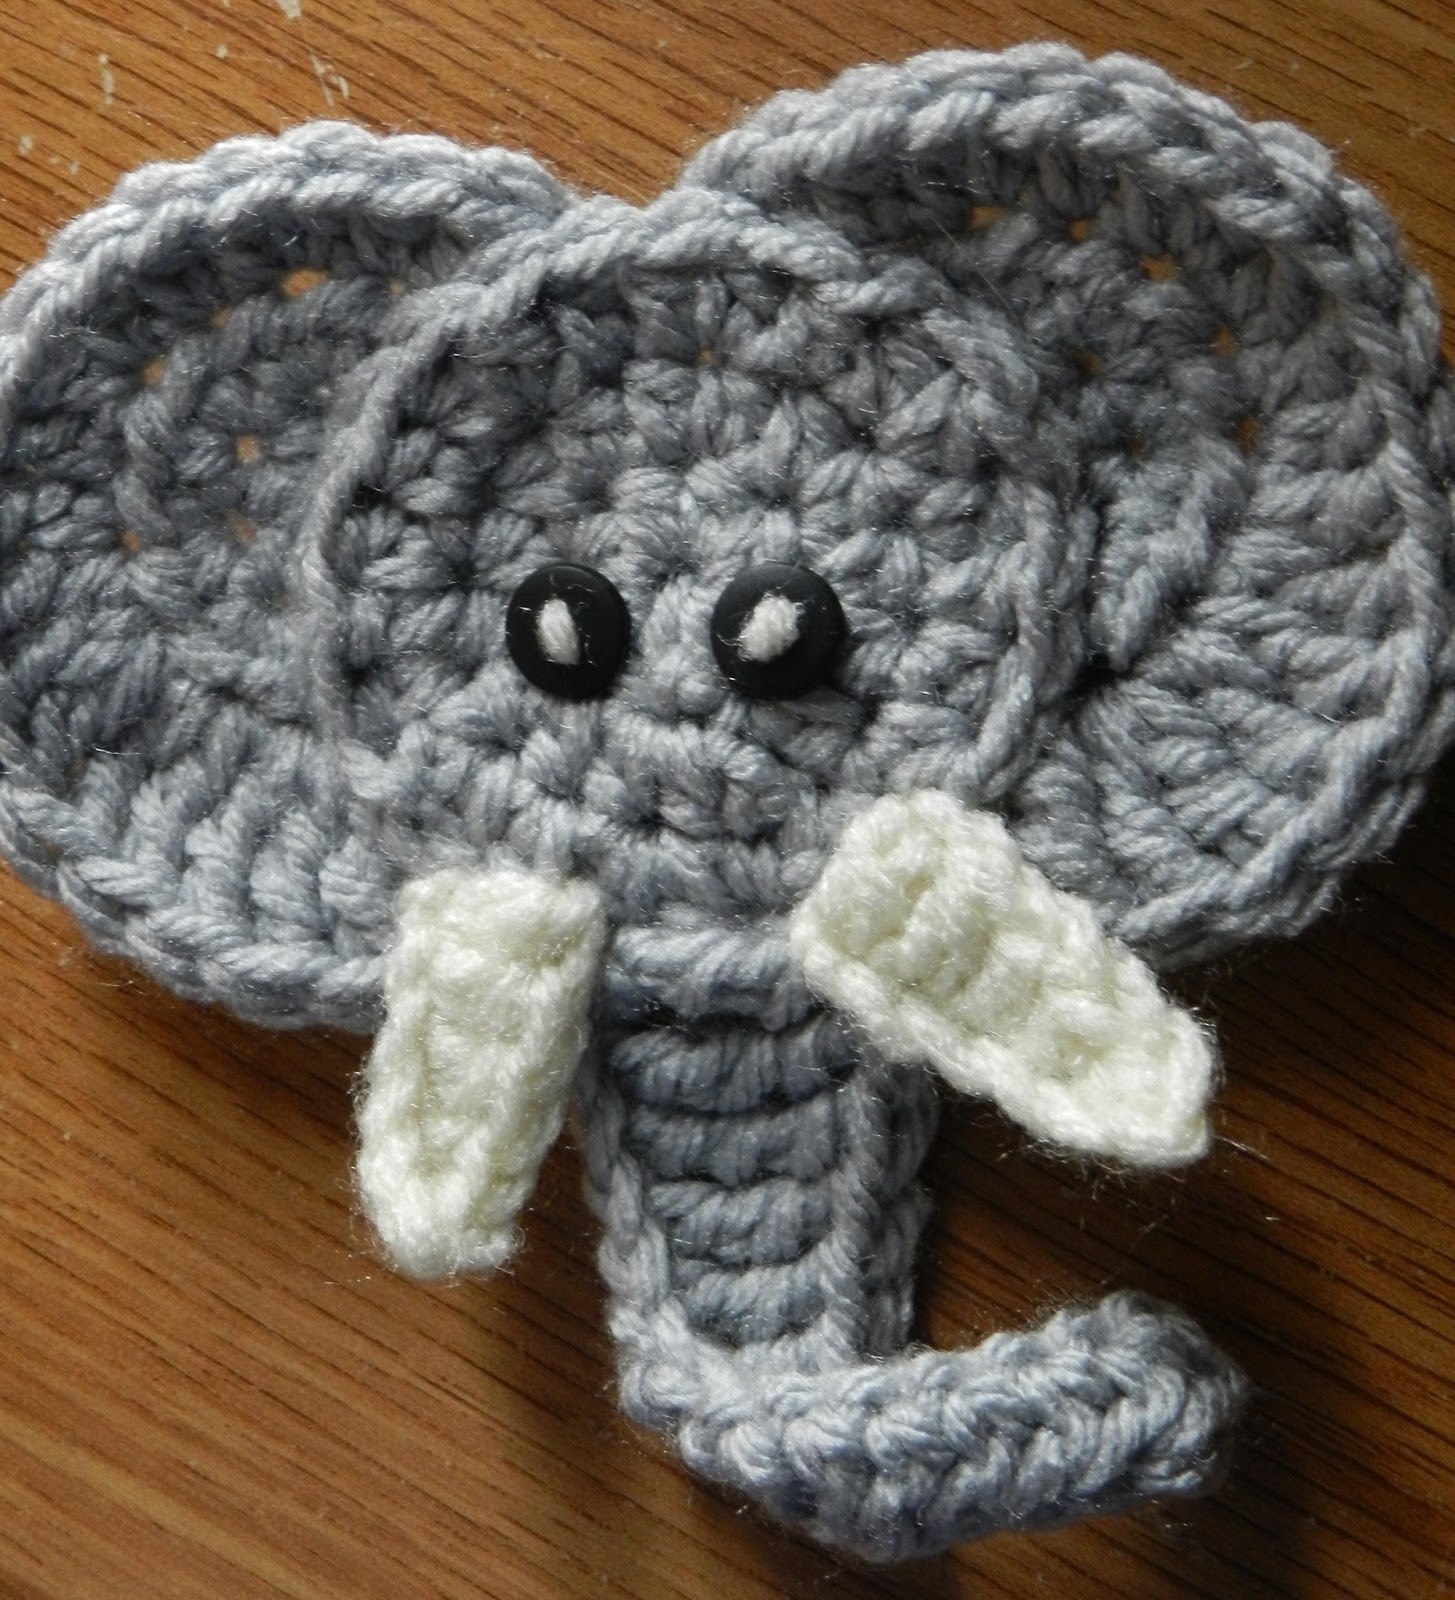 Elephant Crochet Pattern Awesome Hooking Housewives Elephant Applique Free Pattern Of Incredible 48 Ideas Elephant Crochet Pattern